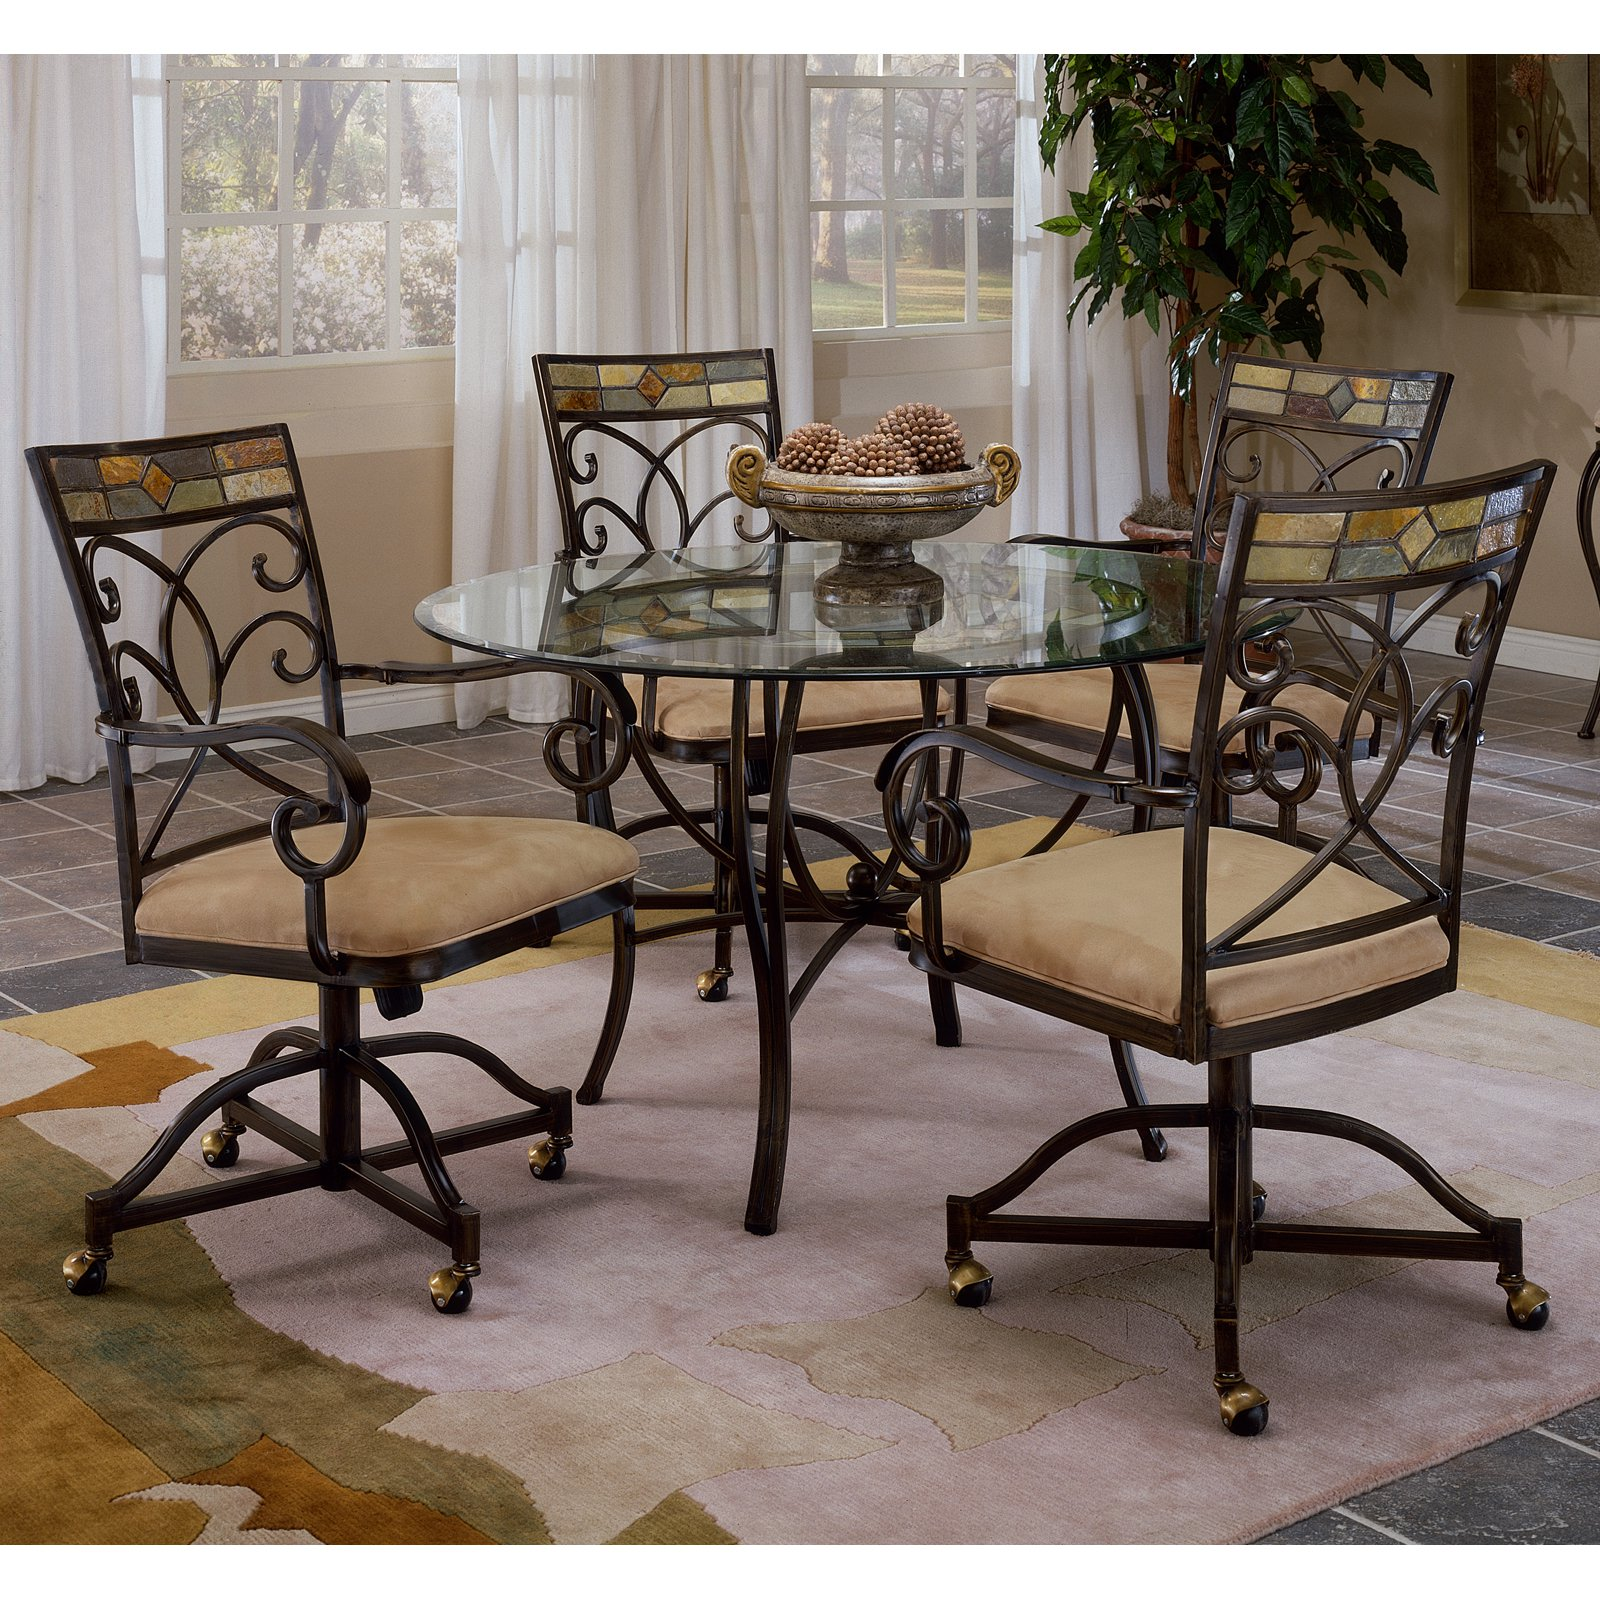 Kitchen table chairs with wheels – Kitchen ideas